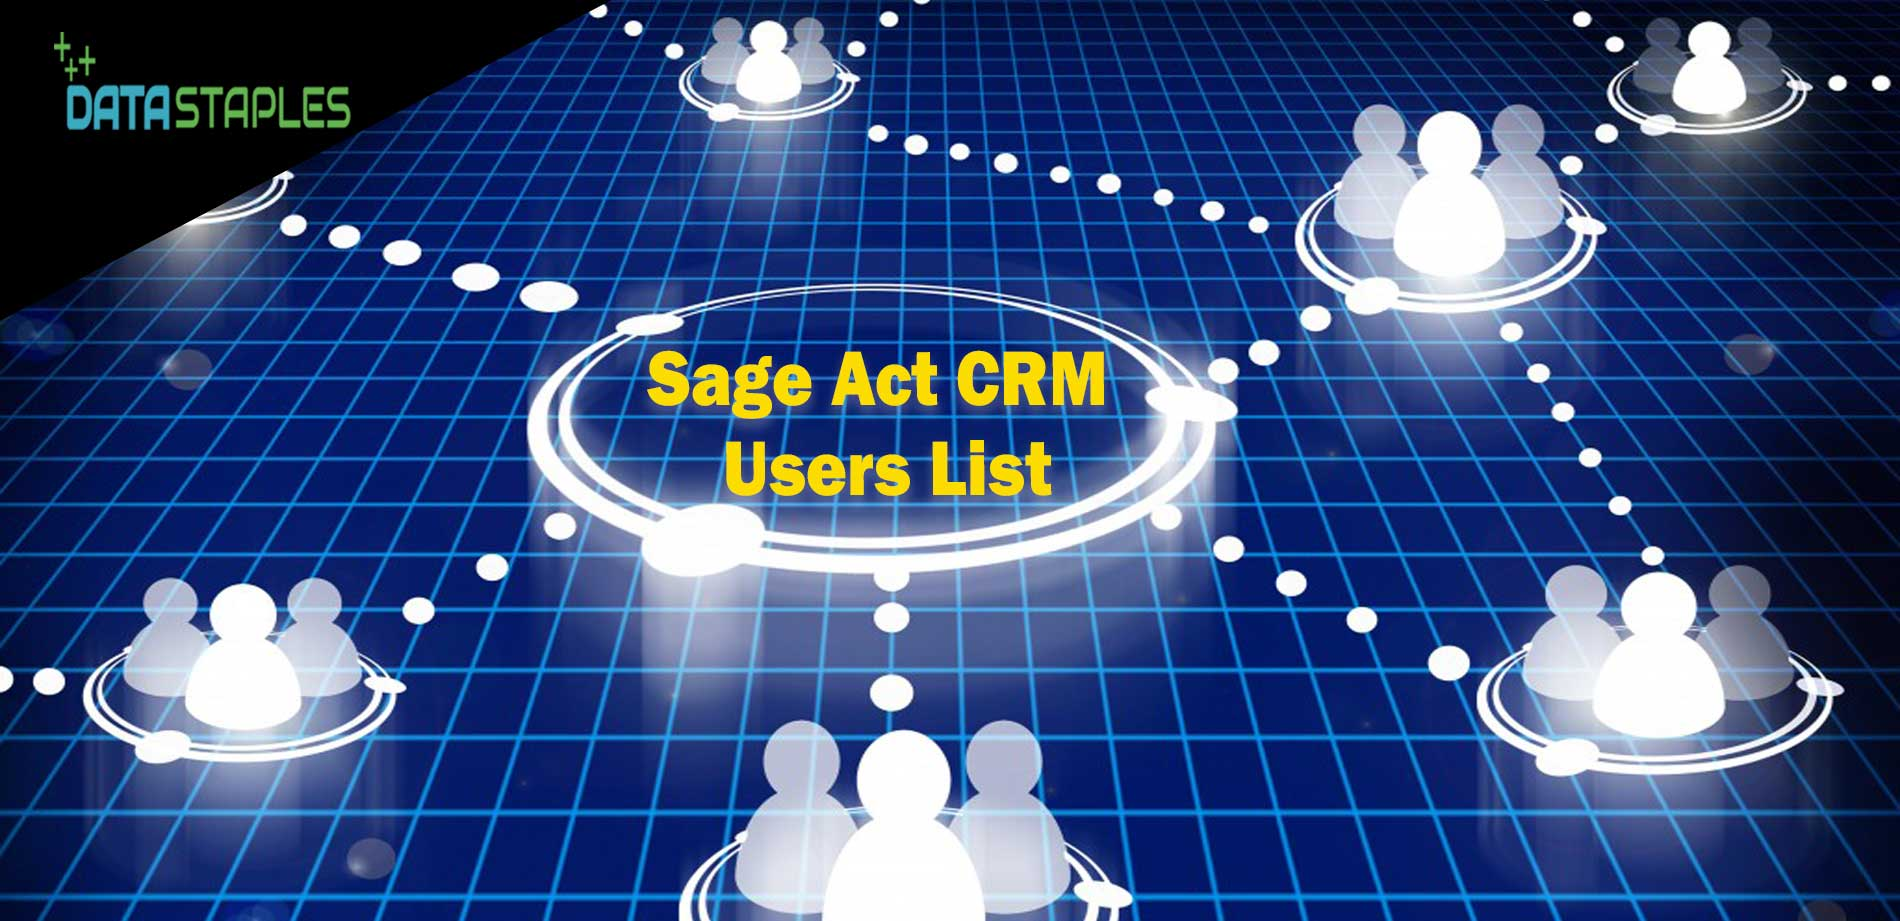 Sage Act CRM Users Mailing List   DataStaples